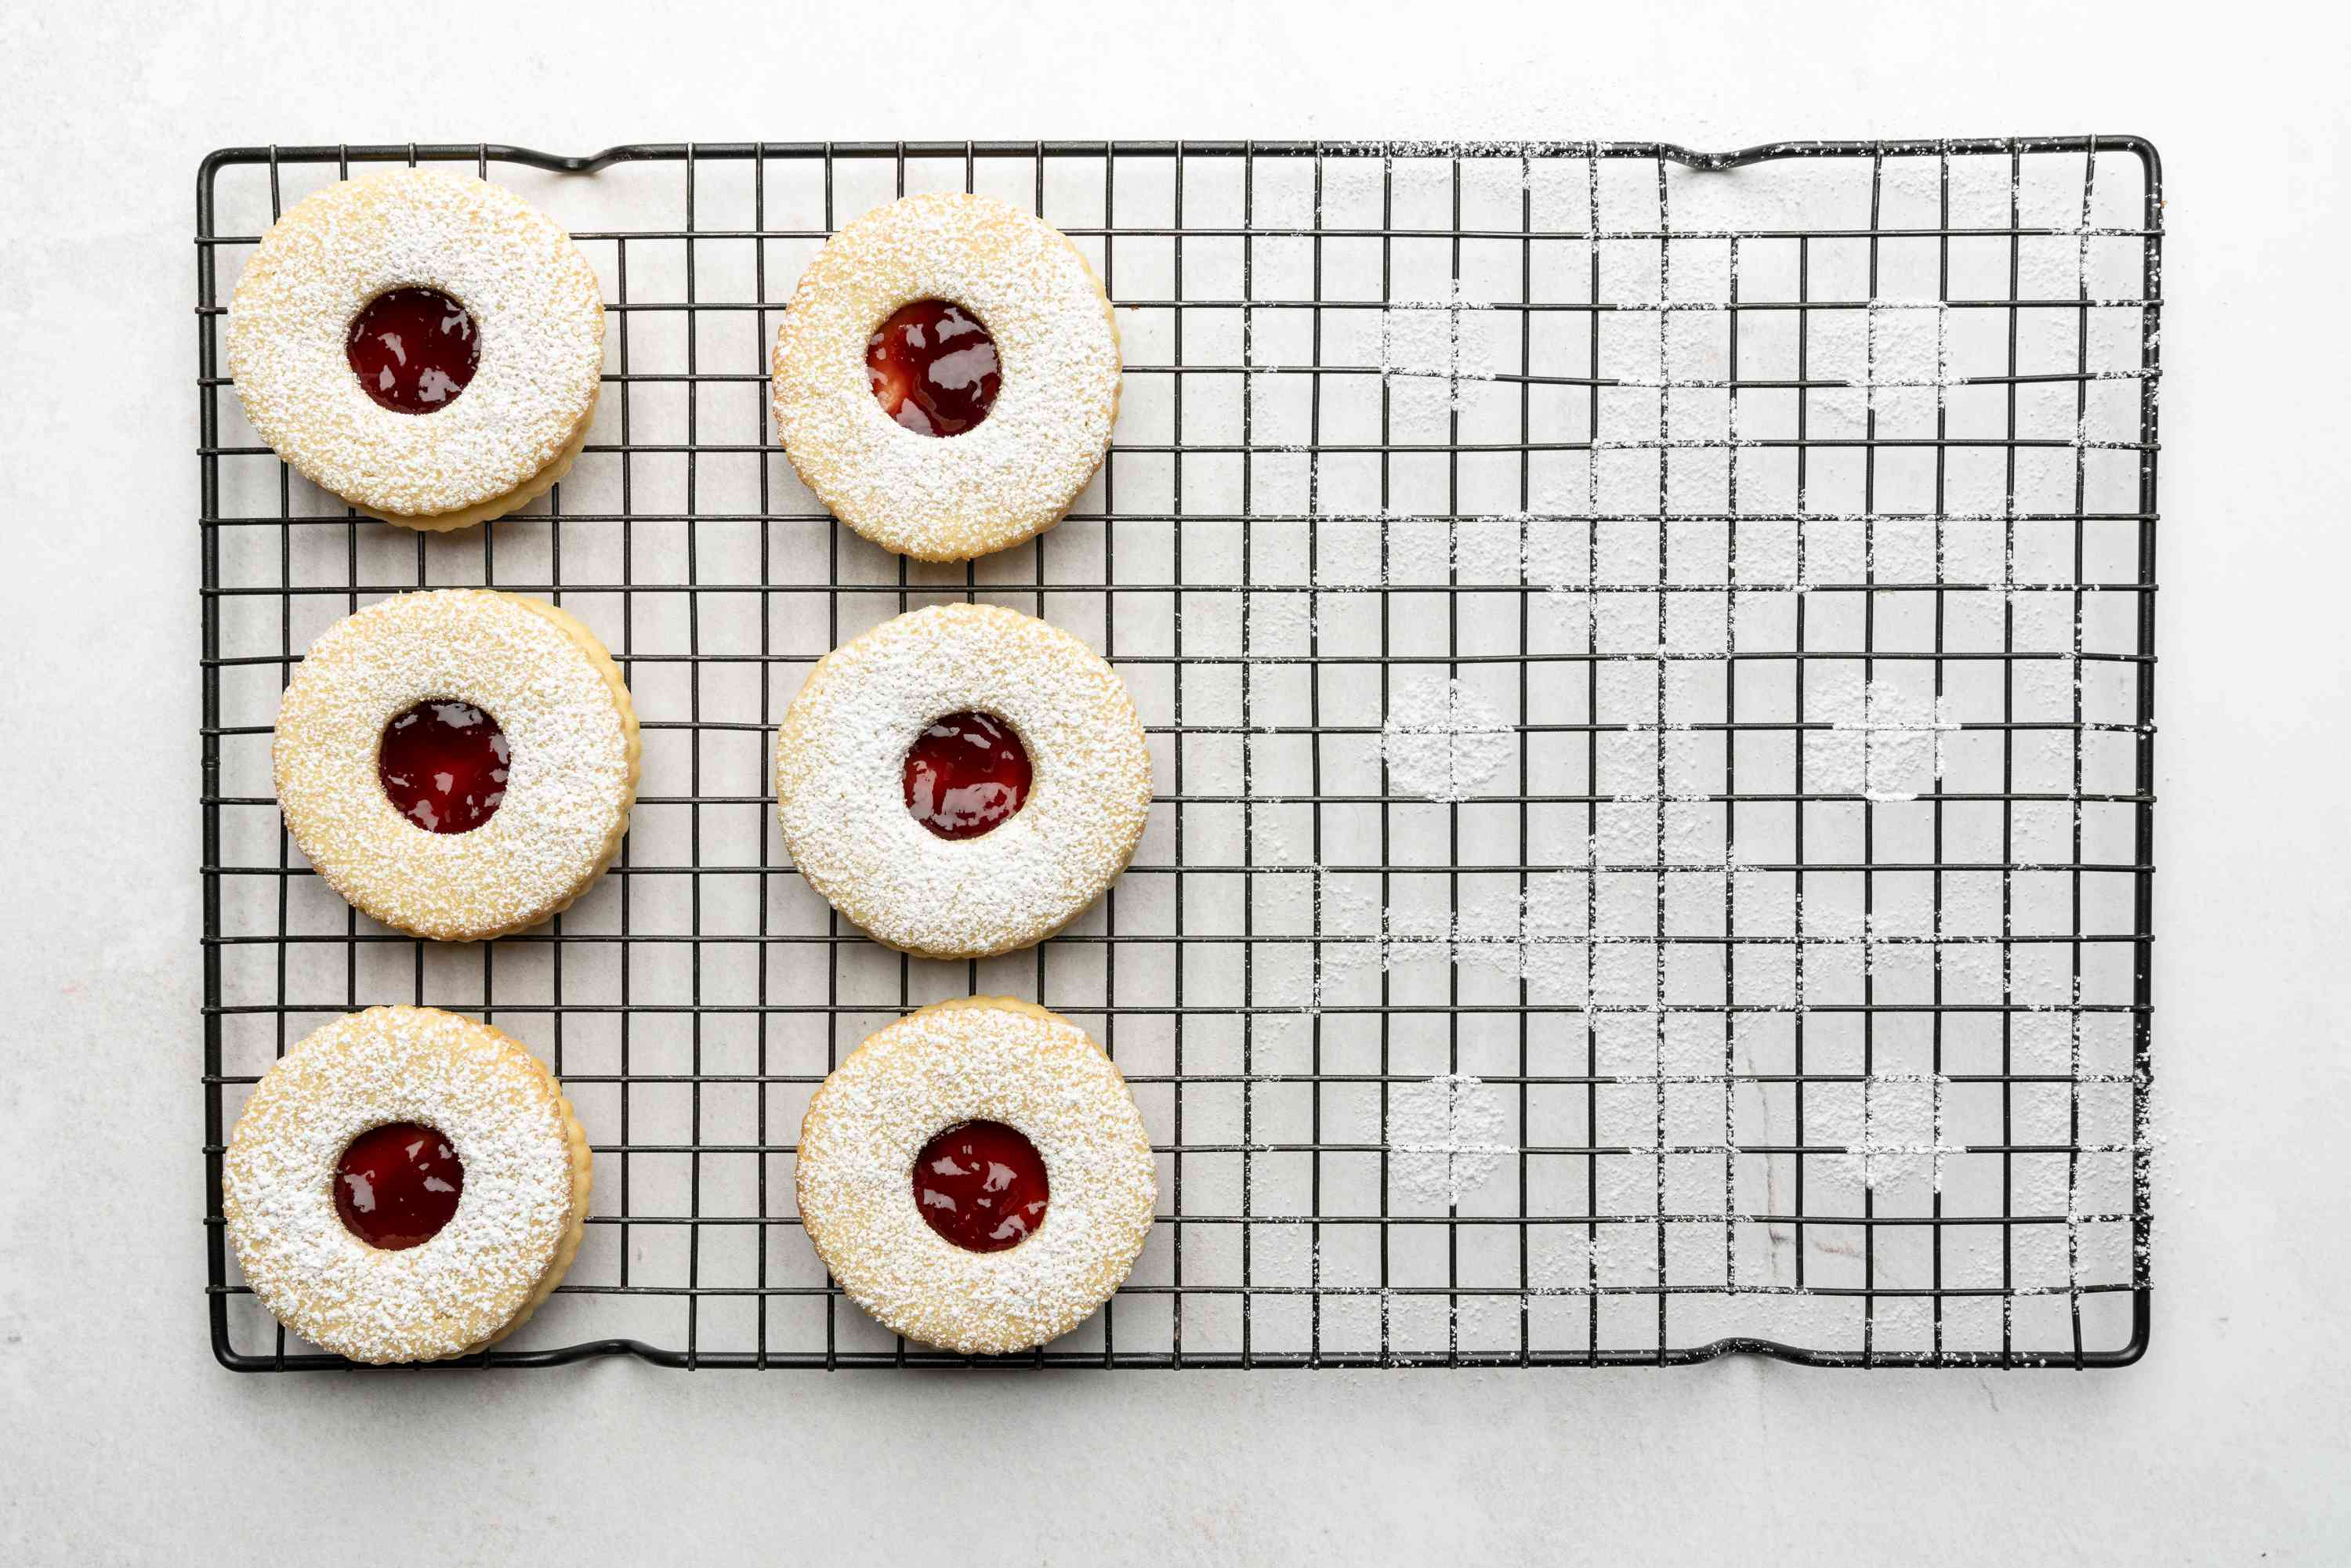 Austrian Linzer Cookie on a cooling rack